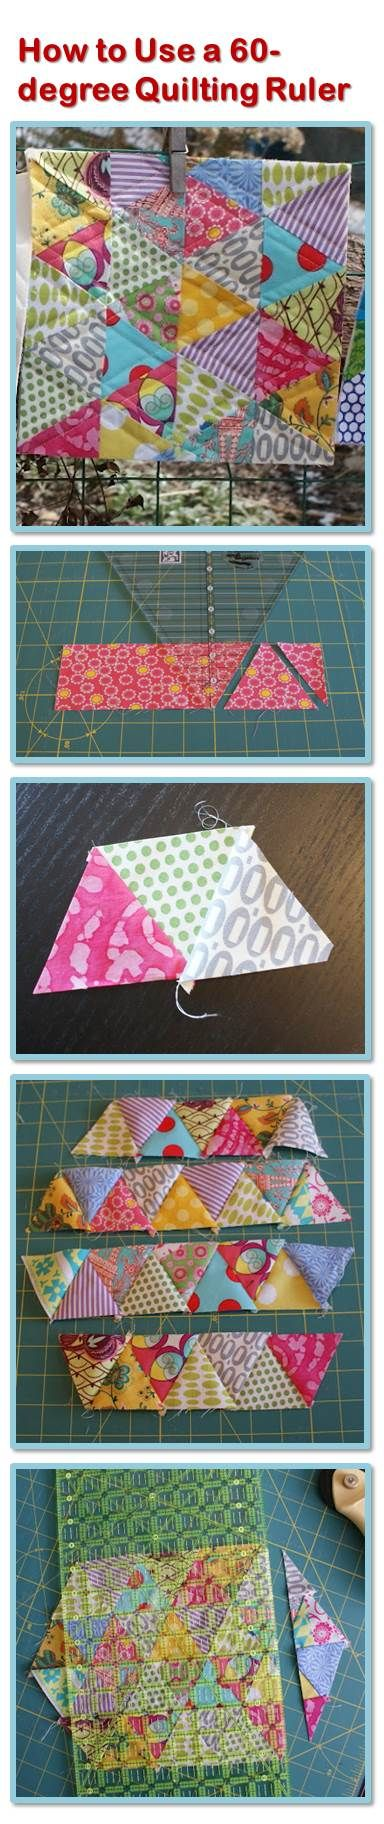 How to Use a 60-degree Quilting Ruler - Tutorial - Quilting by Andie Johnson Sews